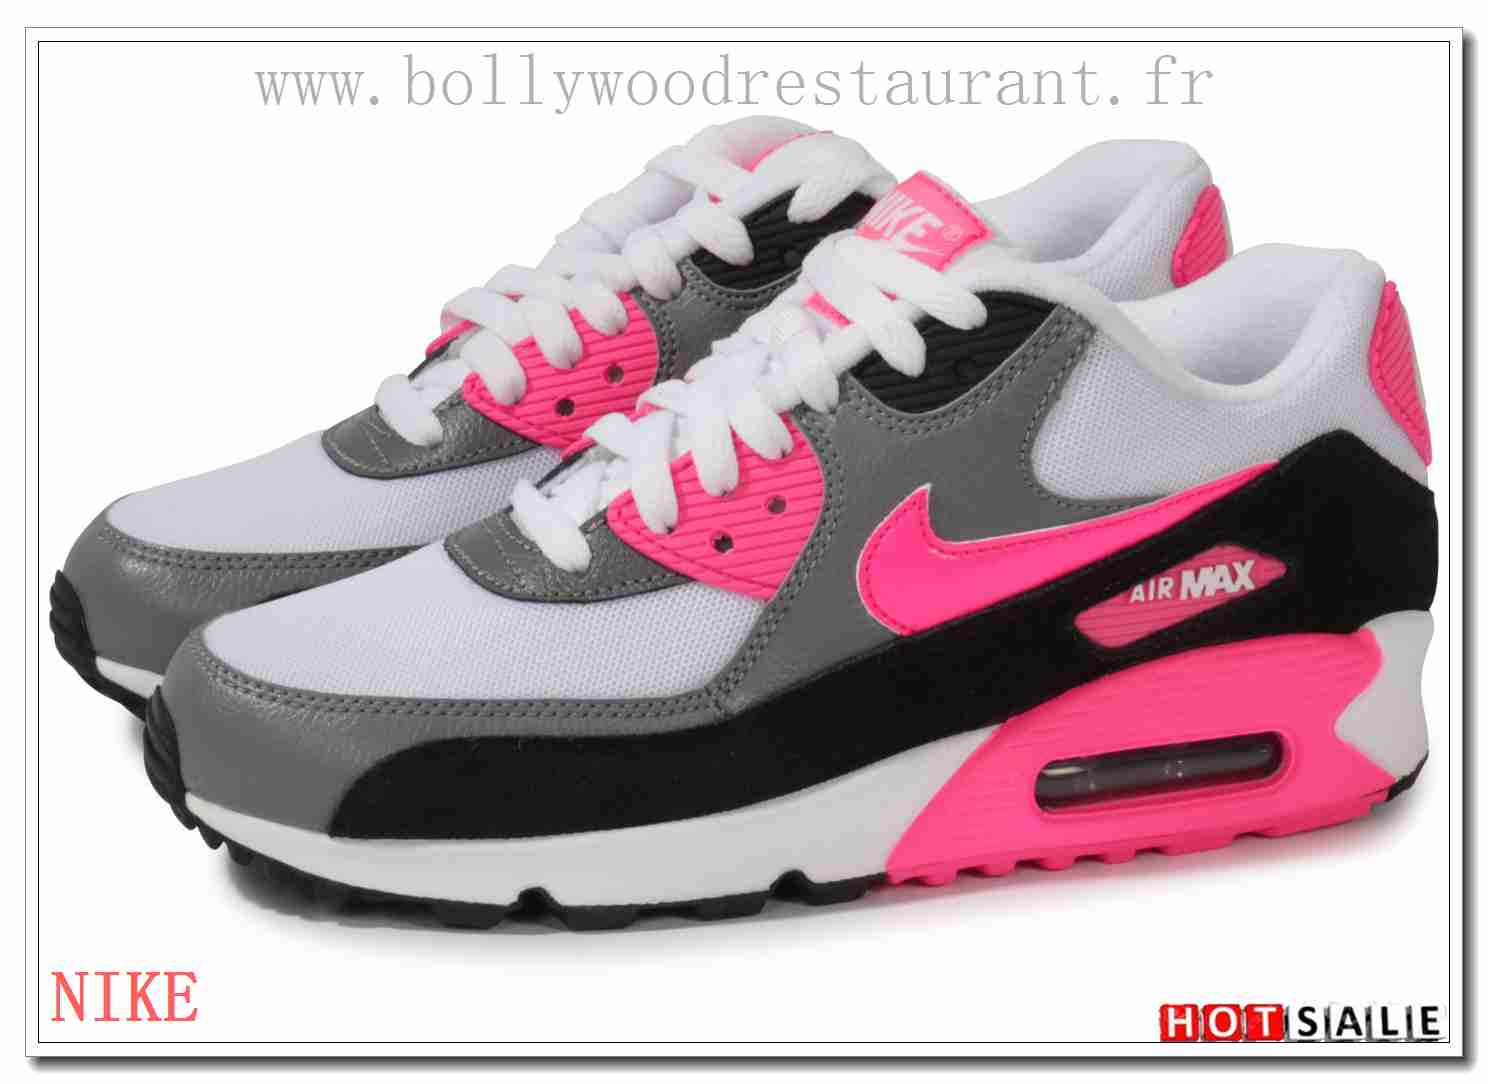 FC4873 Soldes 2018 Nouveau style Nike Air Max 90 - Femme Chaussures - Rose Promotions Vente - H.K.Y.&860 - Taille : 36~39